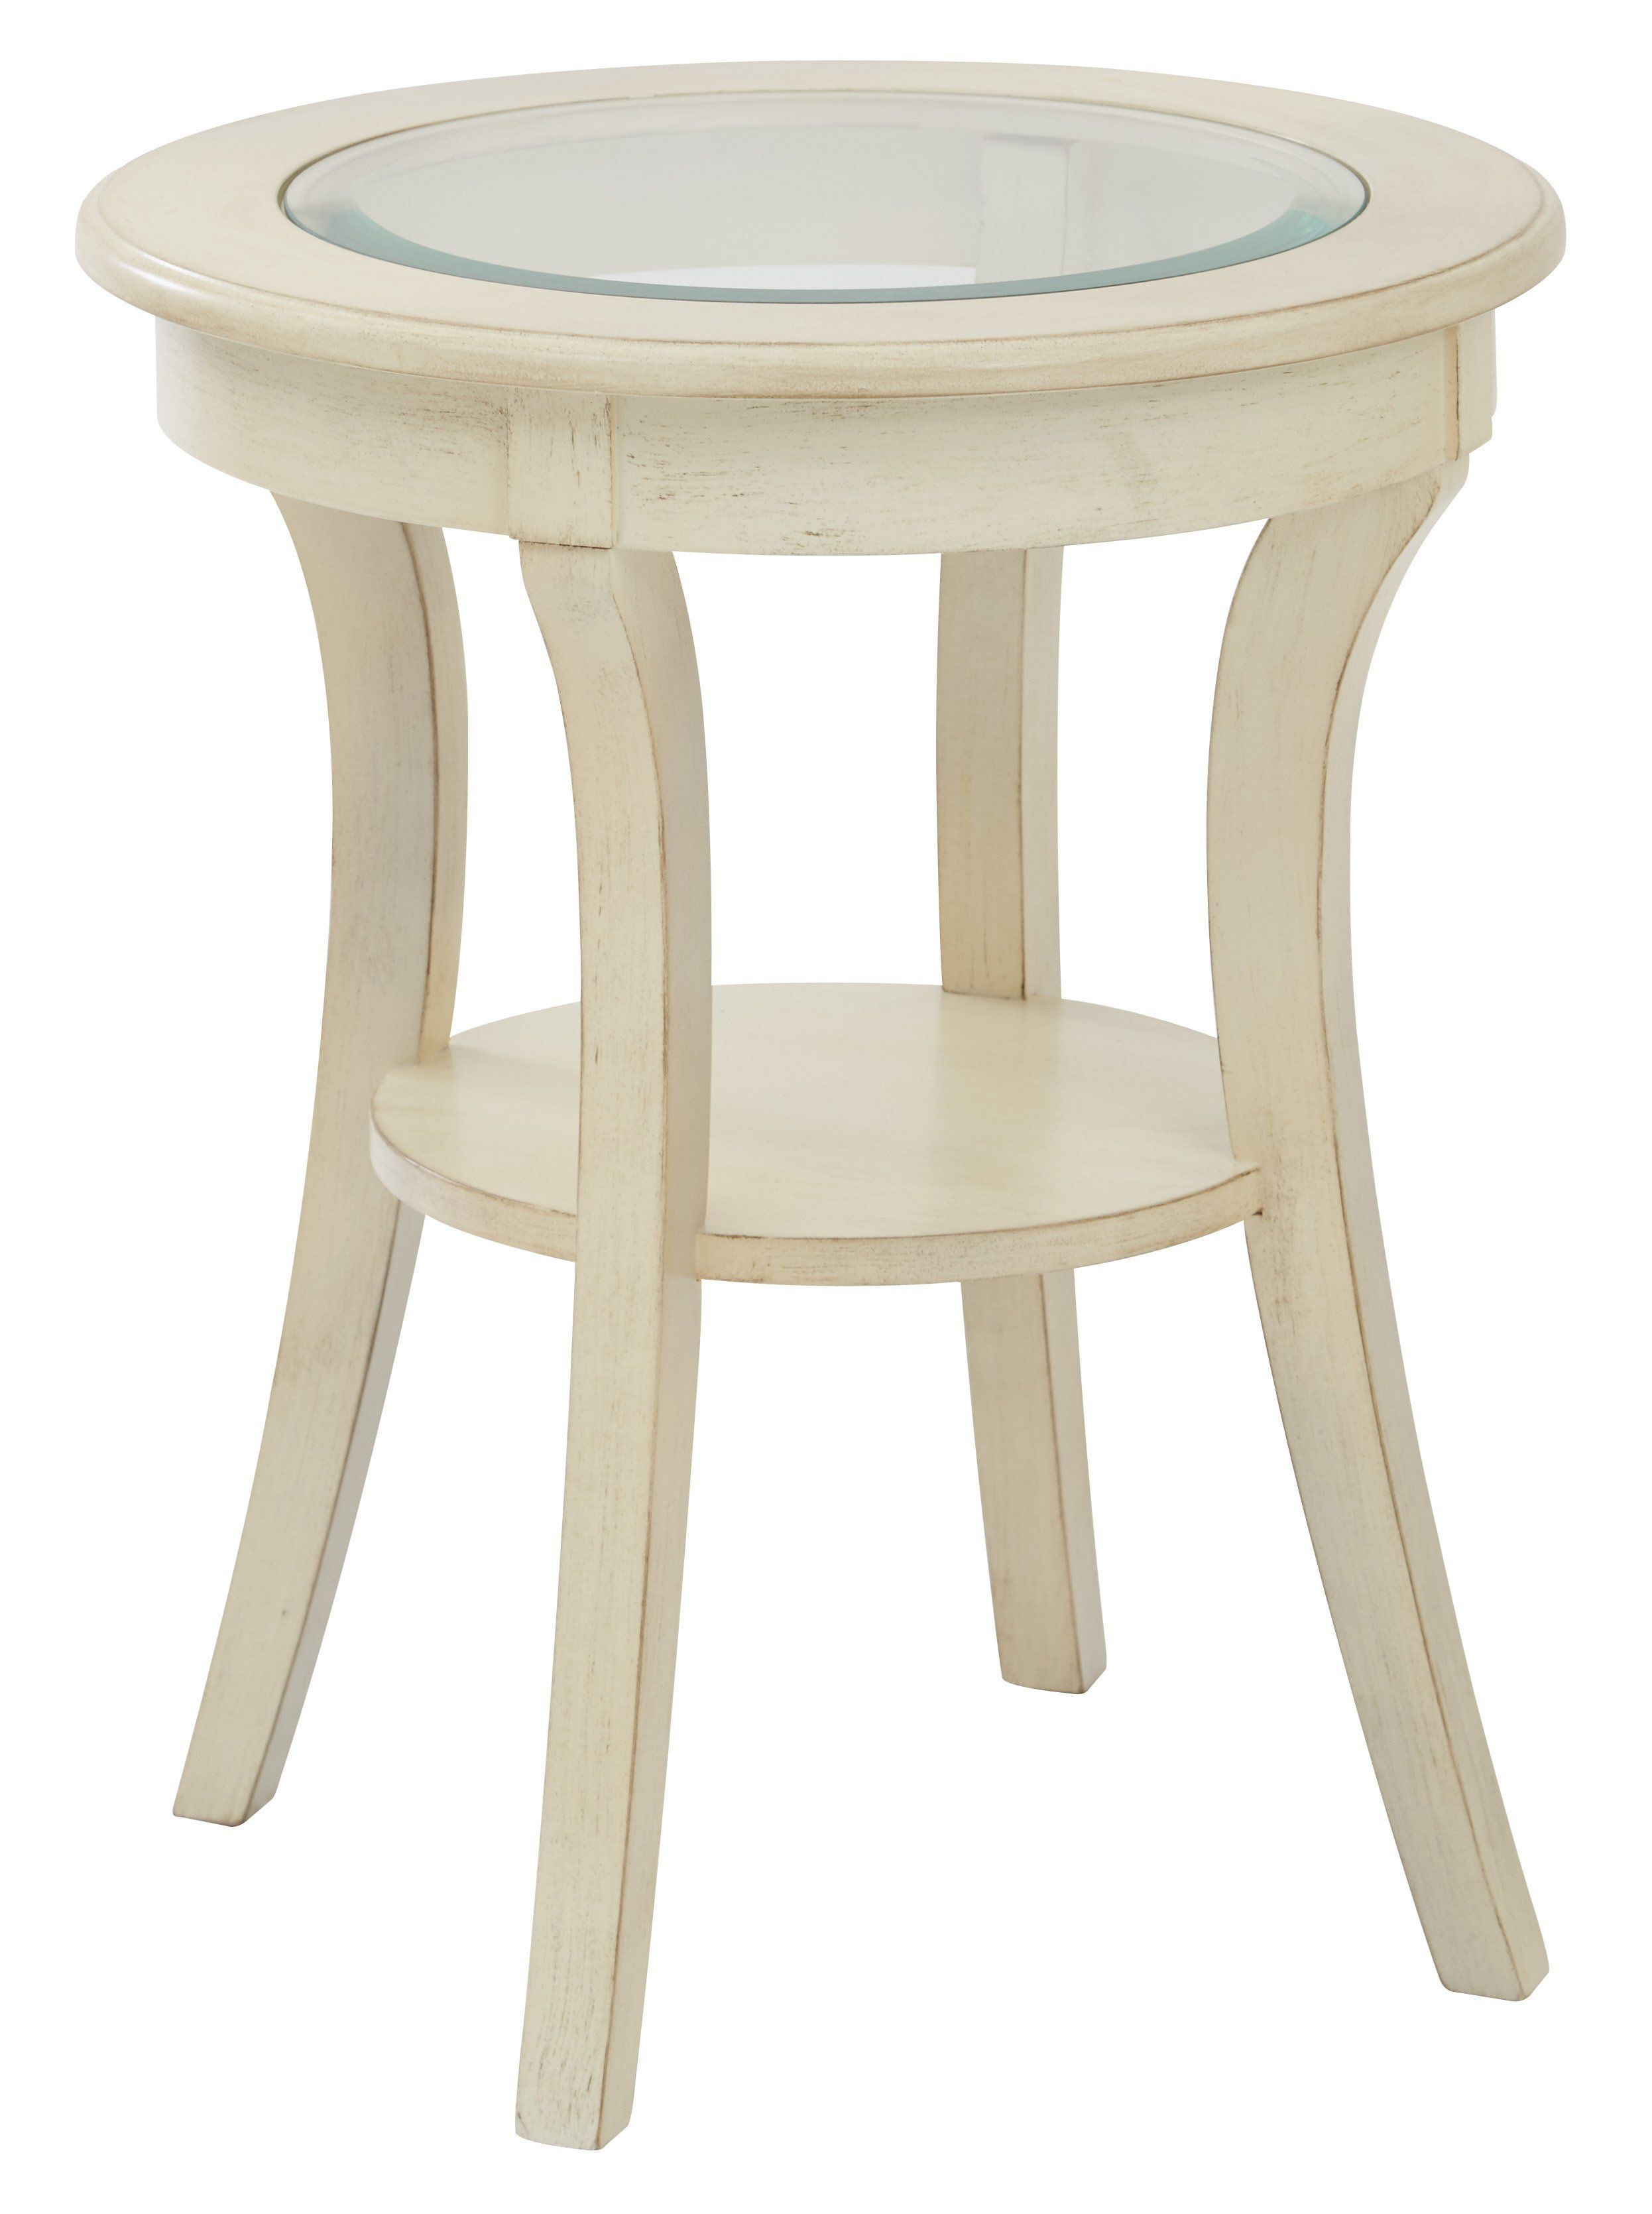 office star antique white harper round accent table products mosaic bistro patio set farm door indoor plant black and cream rug wine furniture lucite glass coffee rustic